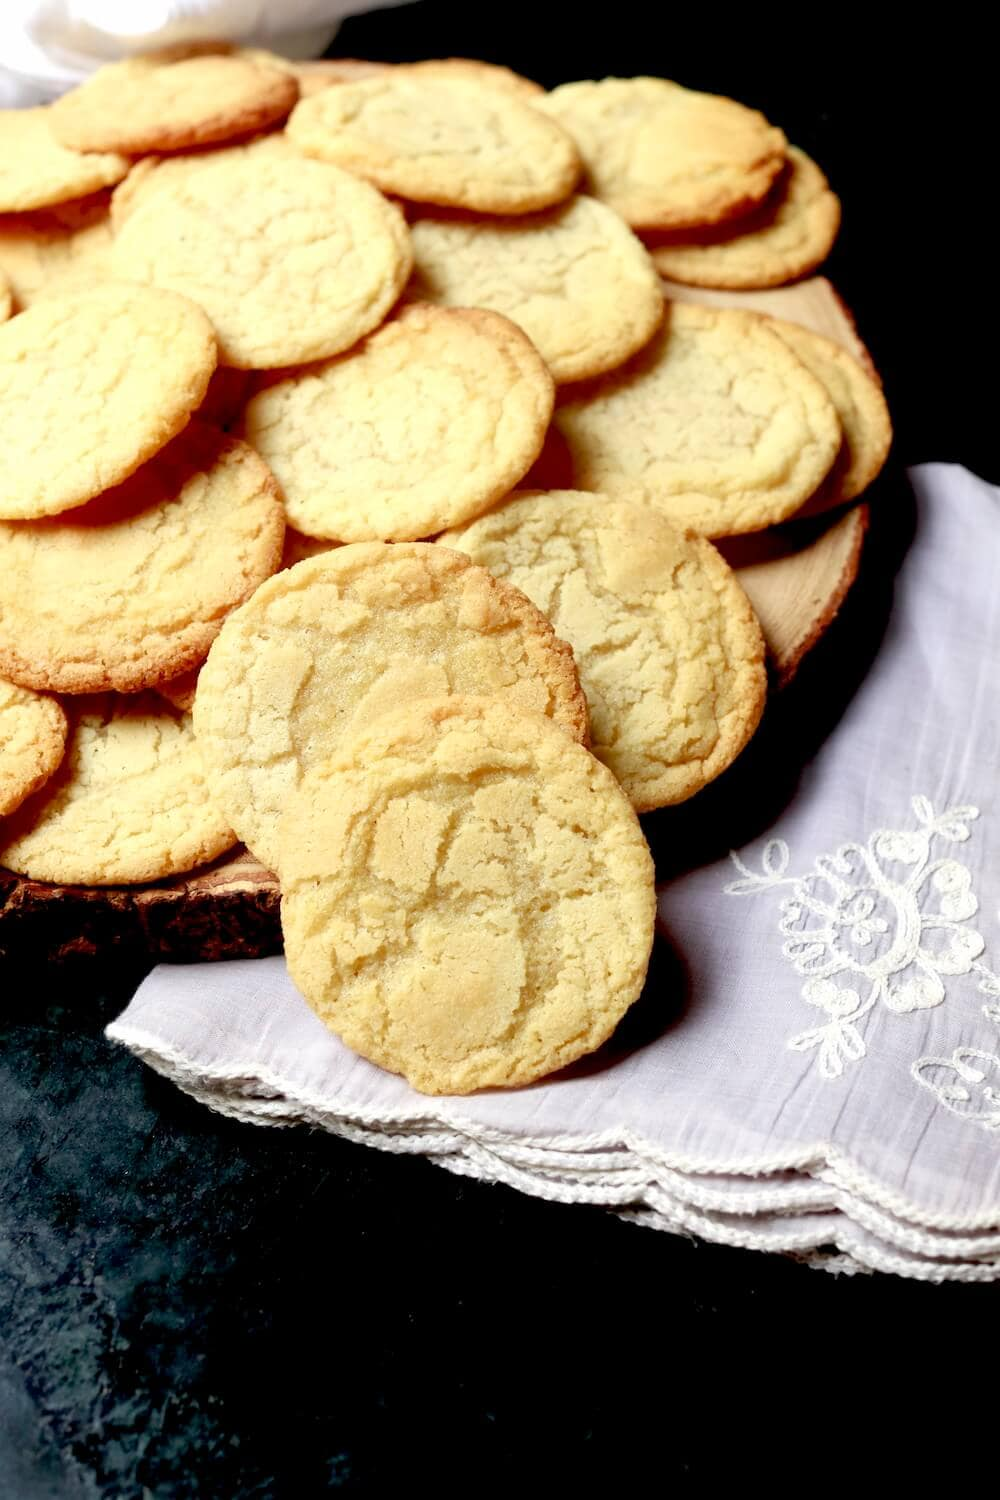 Homemade sugar cookies, recipe by Stacy Lyn Harris